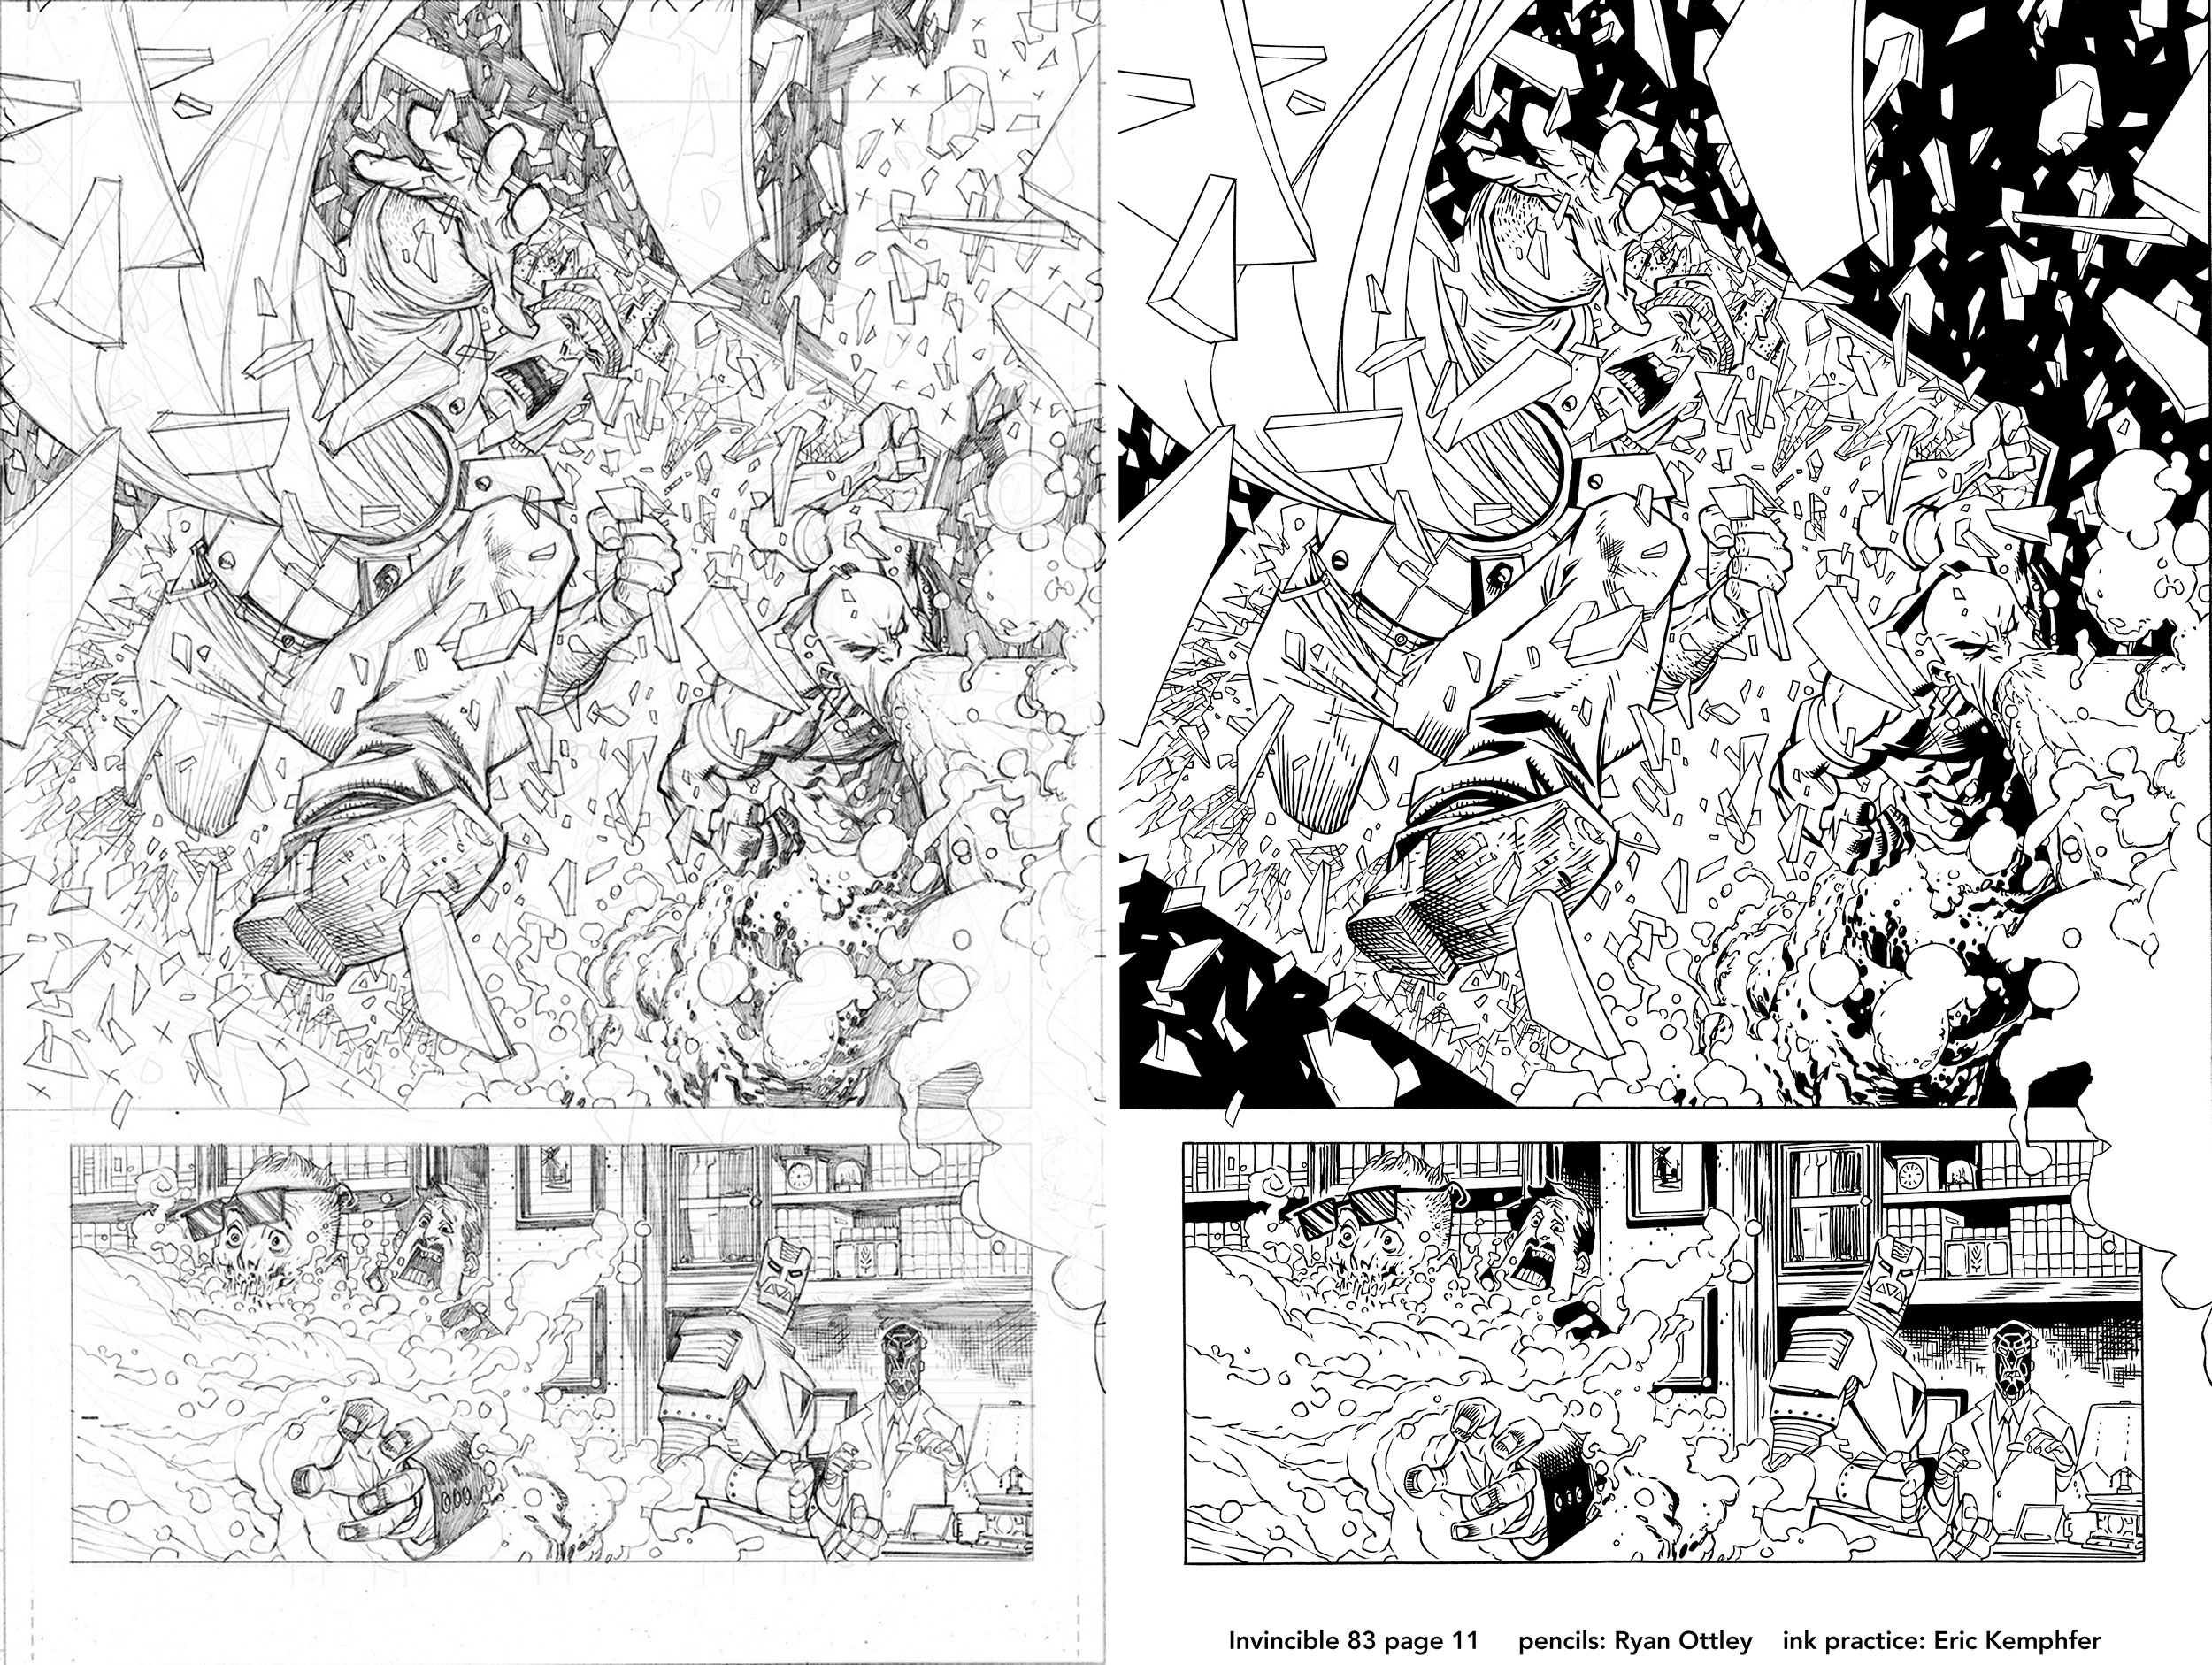 Ink Sample Invincible 83 page 11 by EricKemphfer